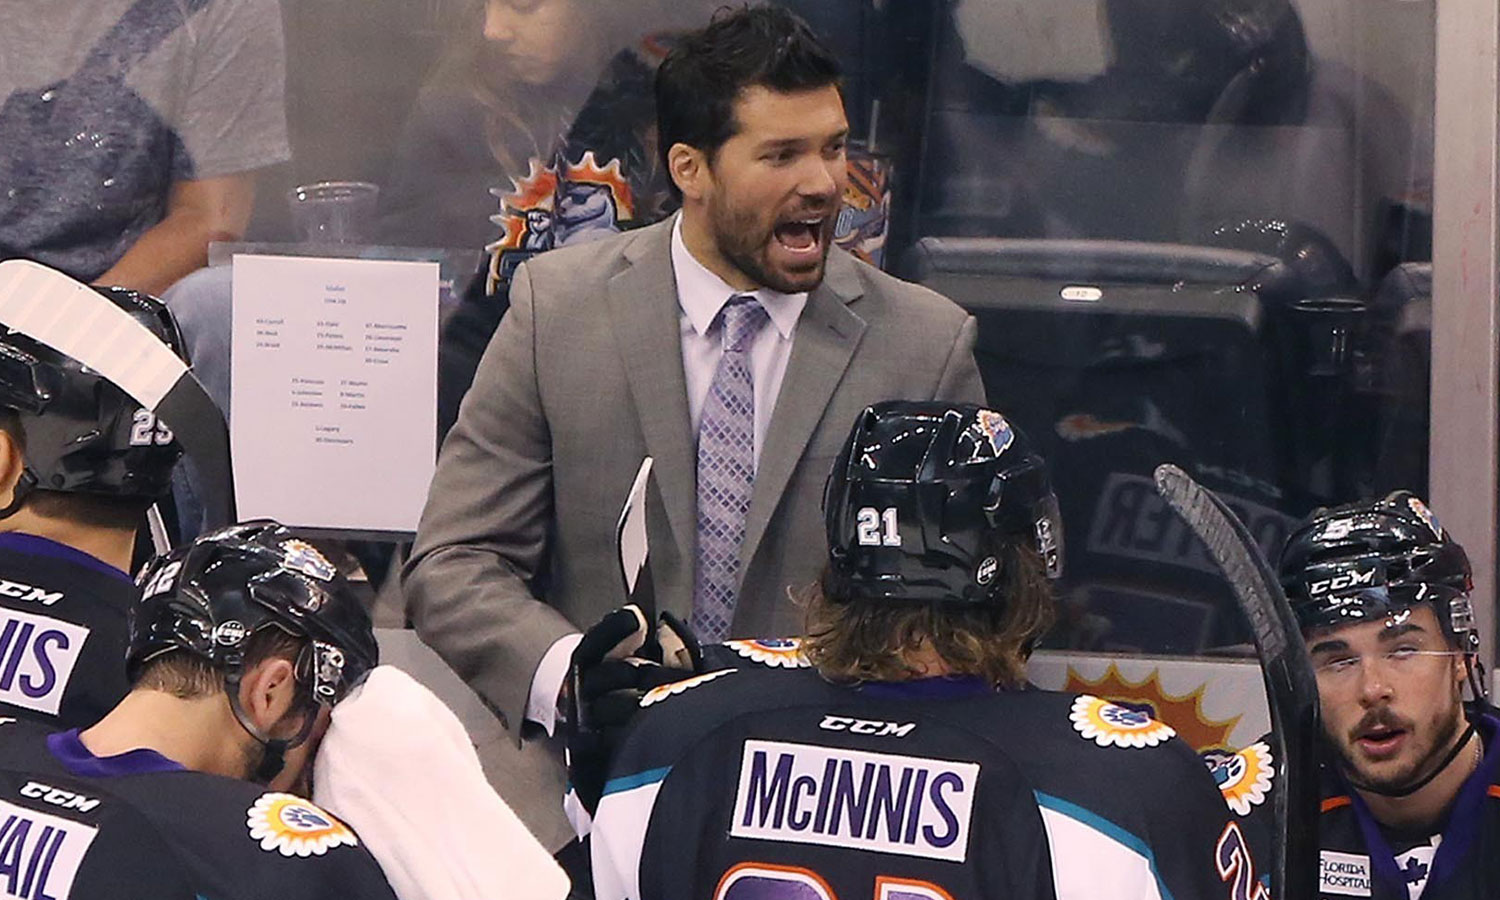 USHL: Anthony Noreen Named Head Coach Of Tri-City Storm